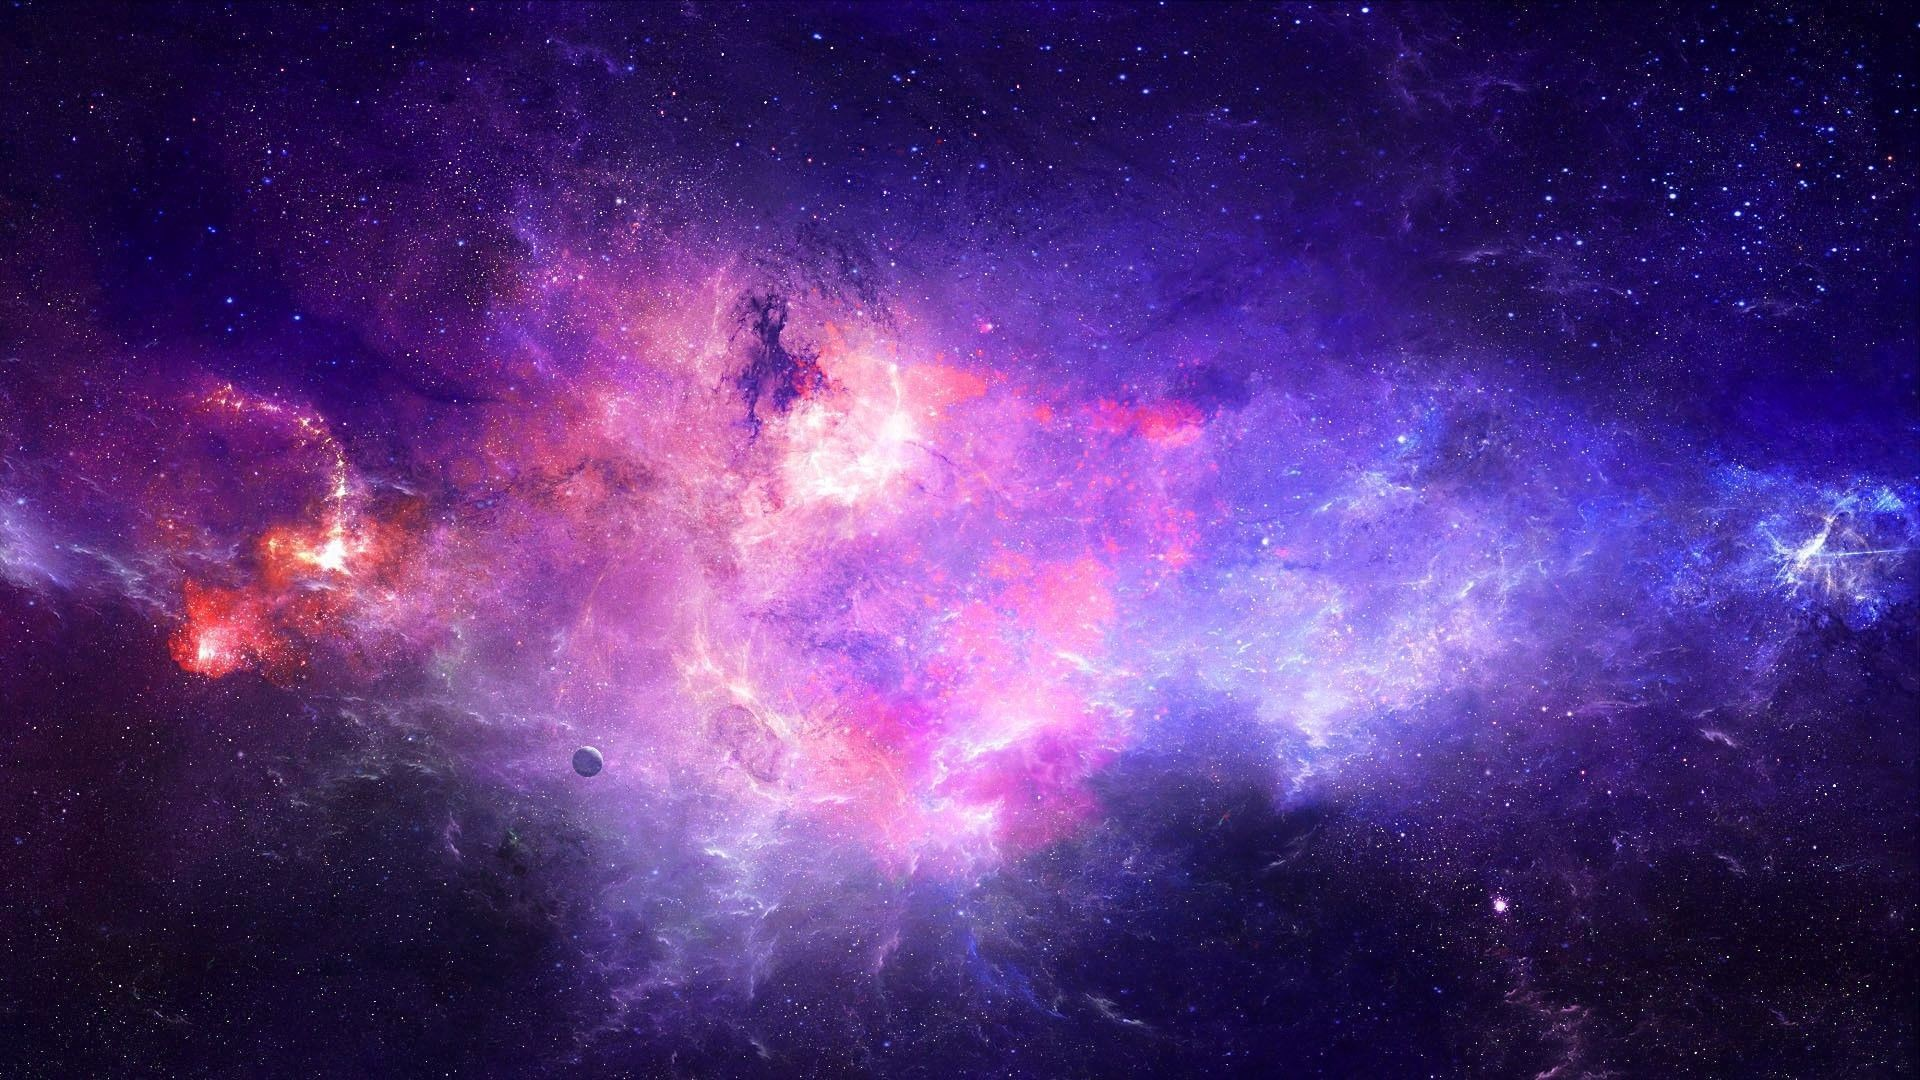 Galaxy background Tumblr ·â' Download free beautiful wallpapers